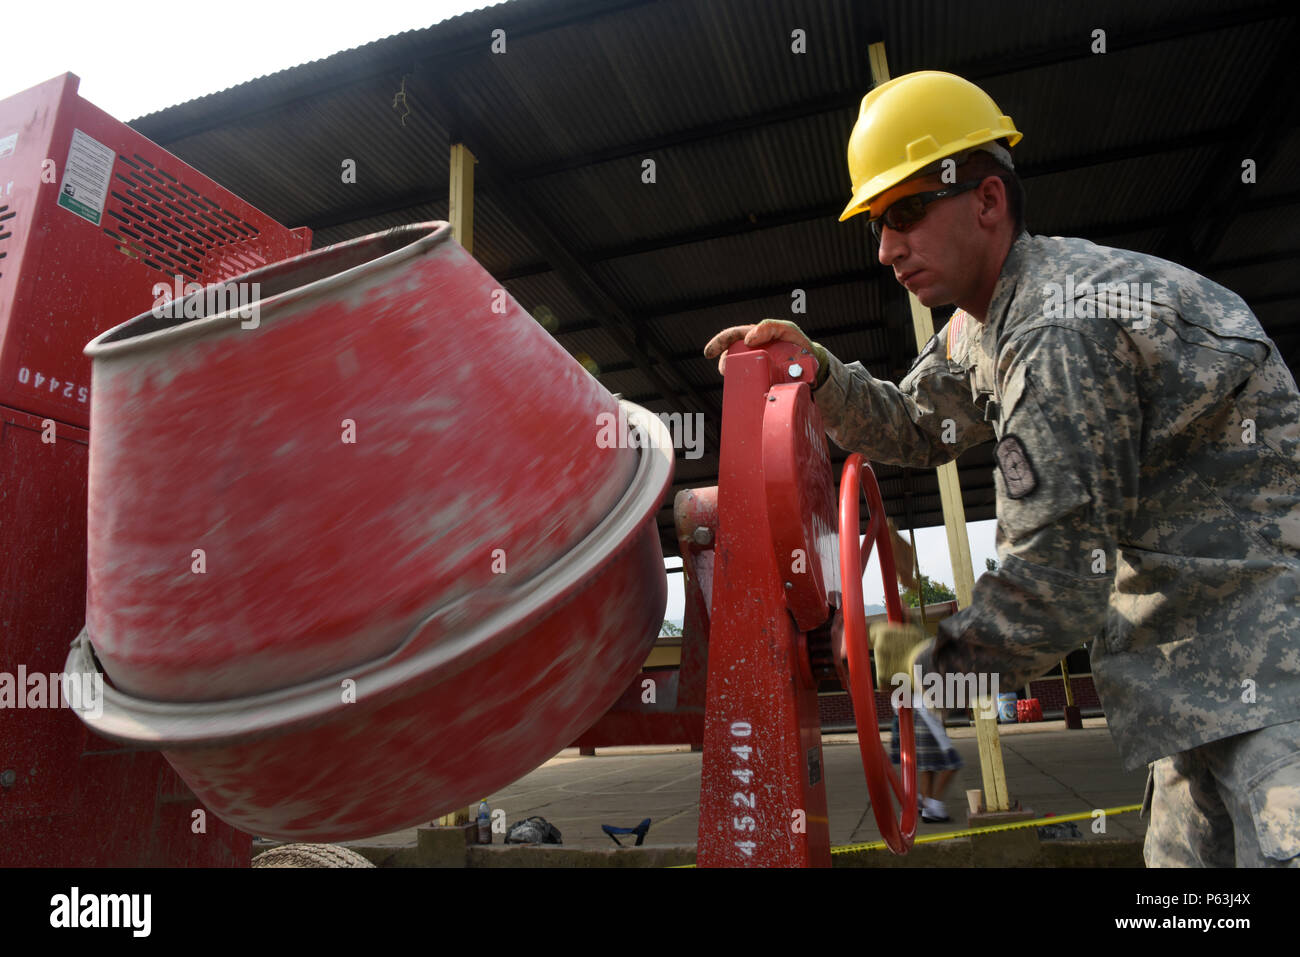 San Rafael, Guatemala—U.S. Army Spc. Jared Dale, 284th Engineer Construction Unit vertical engineer, rotates a potable cement mixer coating the inside with slurry during Exercise BEYOND THE HORIZON 2016 GUATEMALA April 28, 2016. BTH 2016 demonstrates the U.S. government's commitment to Guatemala and the region. Stock Photo